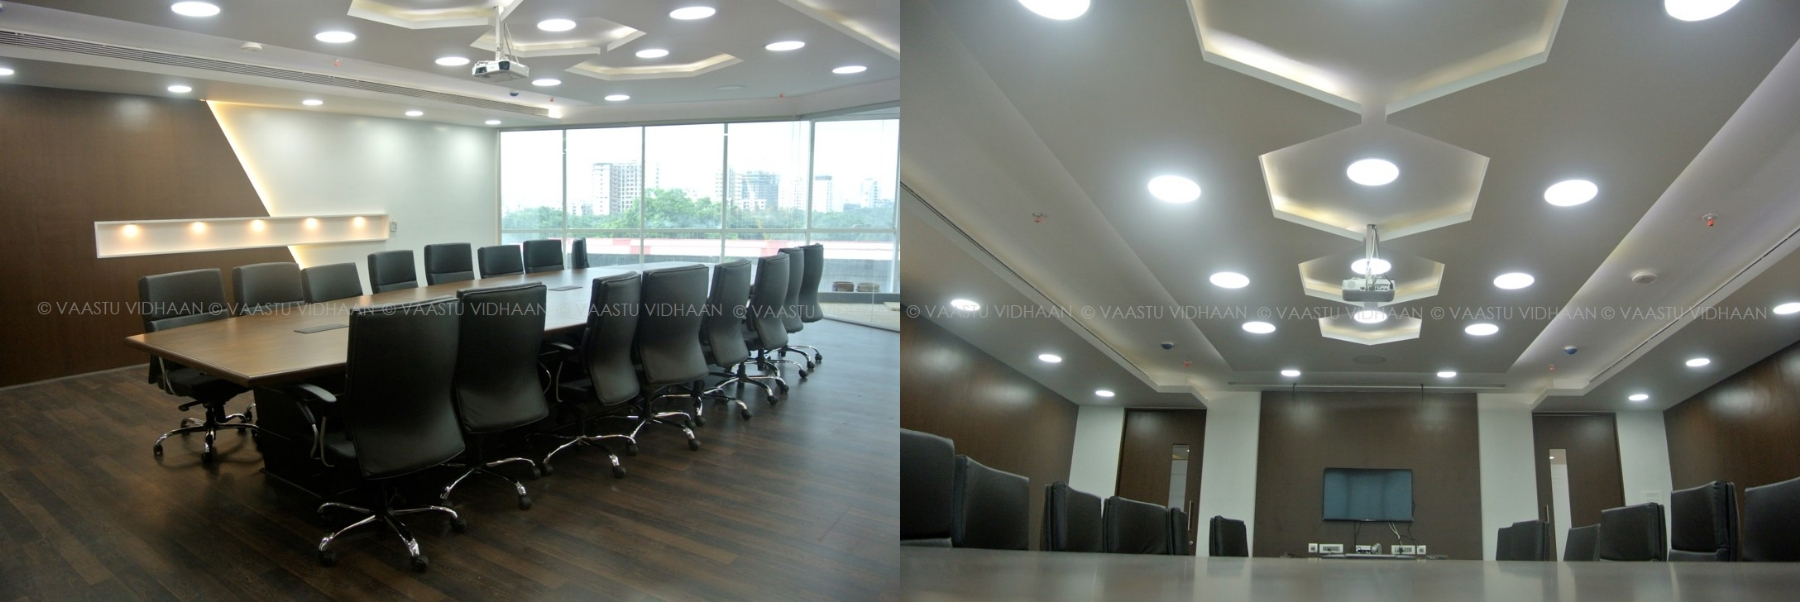 Conference Room_1&n